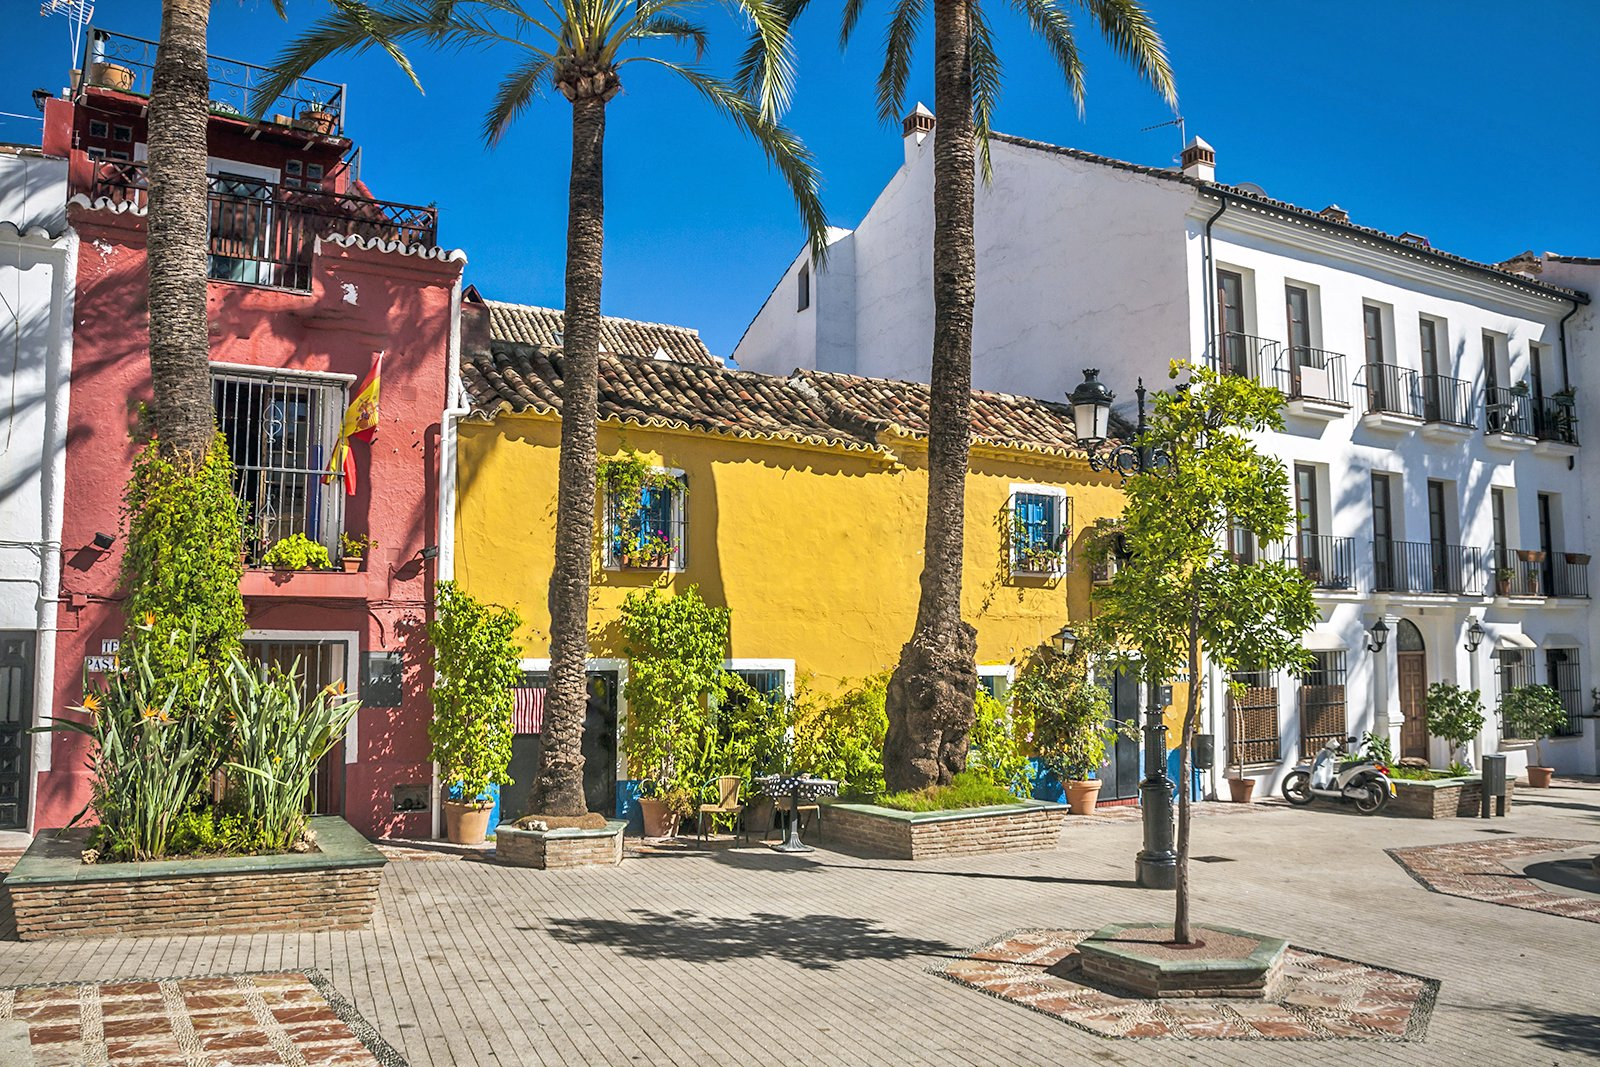 10 Best Things To Do In Marbella What Is Marbella Most Famous For Go Guides